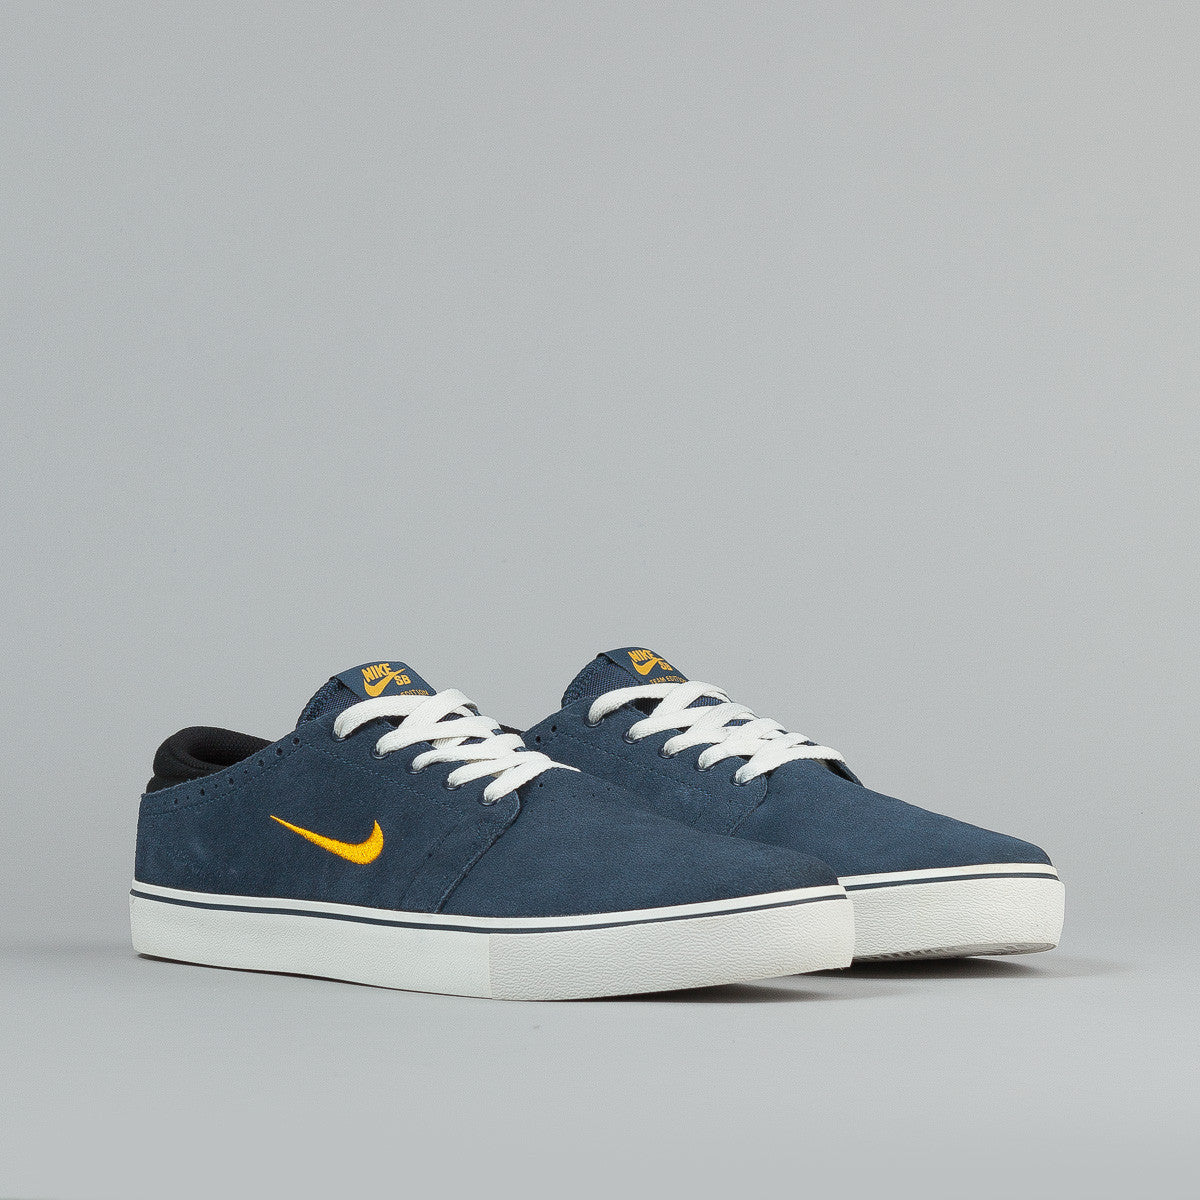 Nike SB Team Edition 2 Shoes - Squadron Blue / Midas Gold - Sail